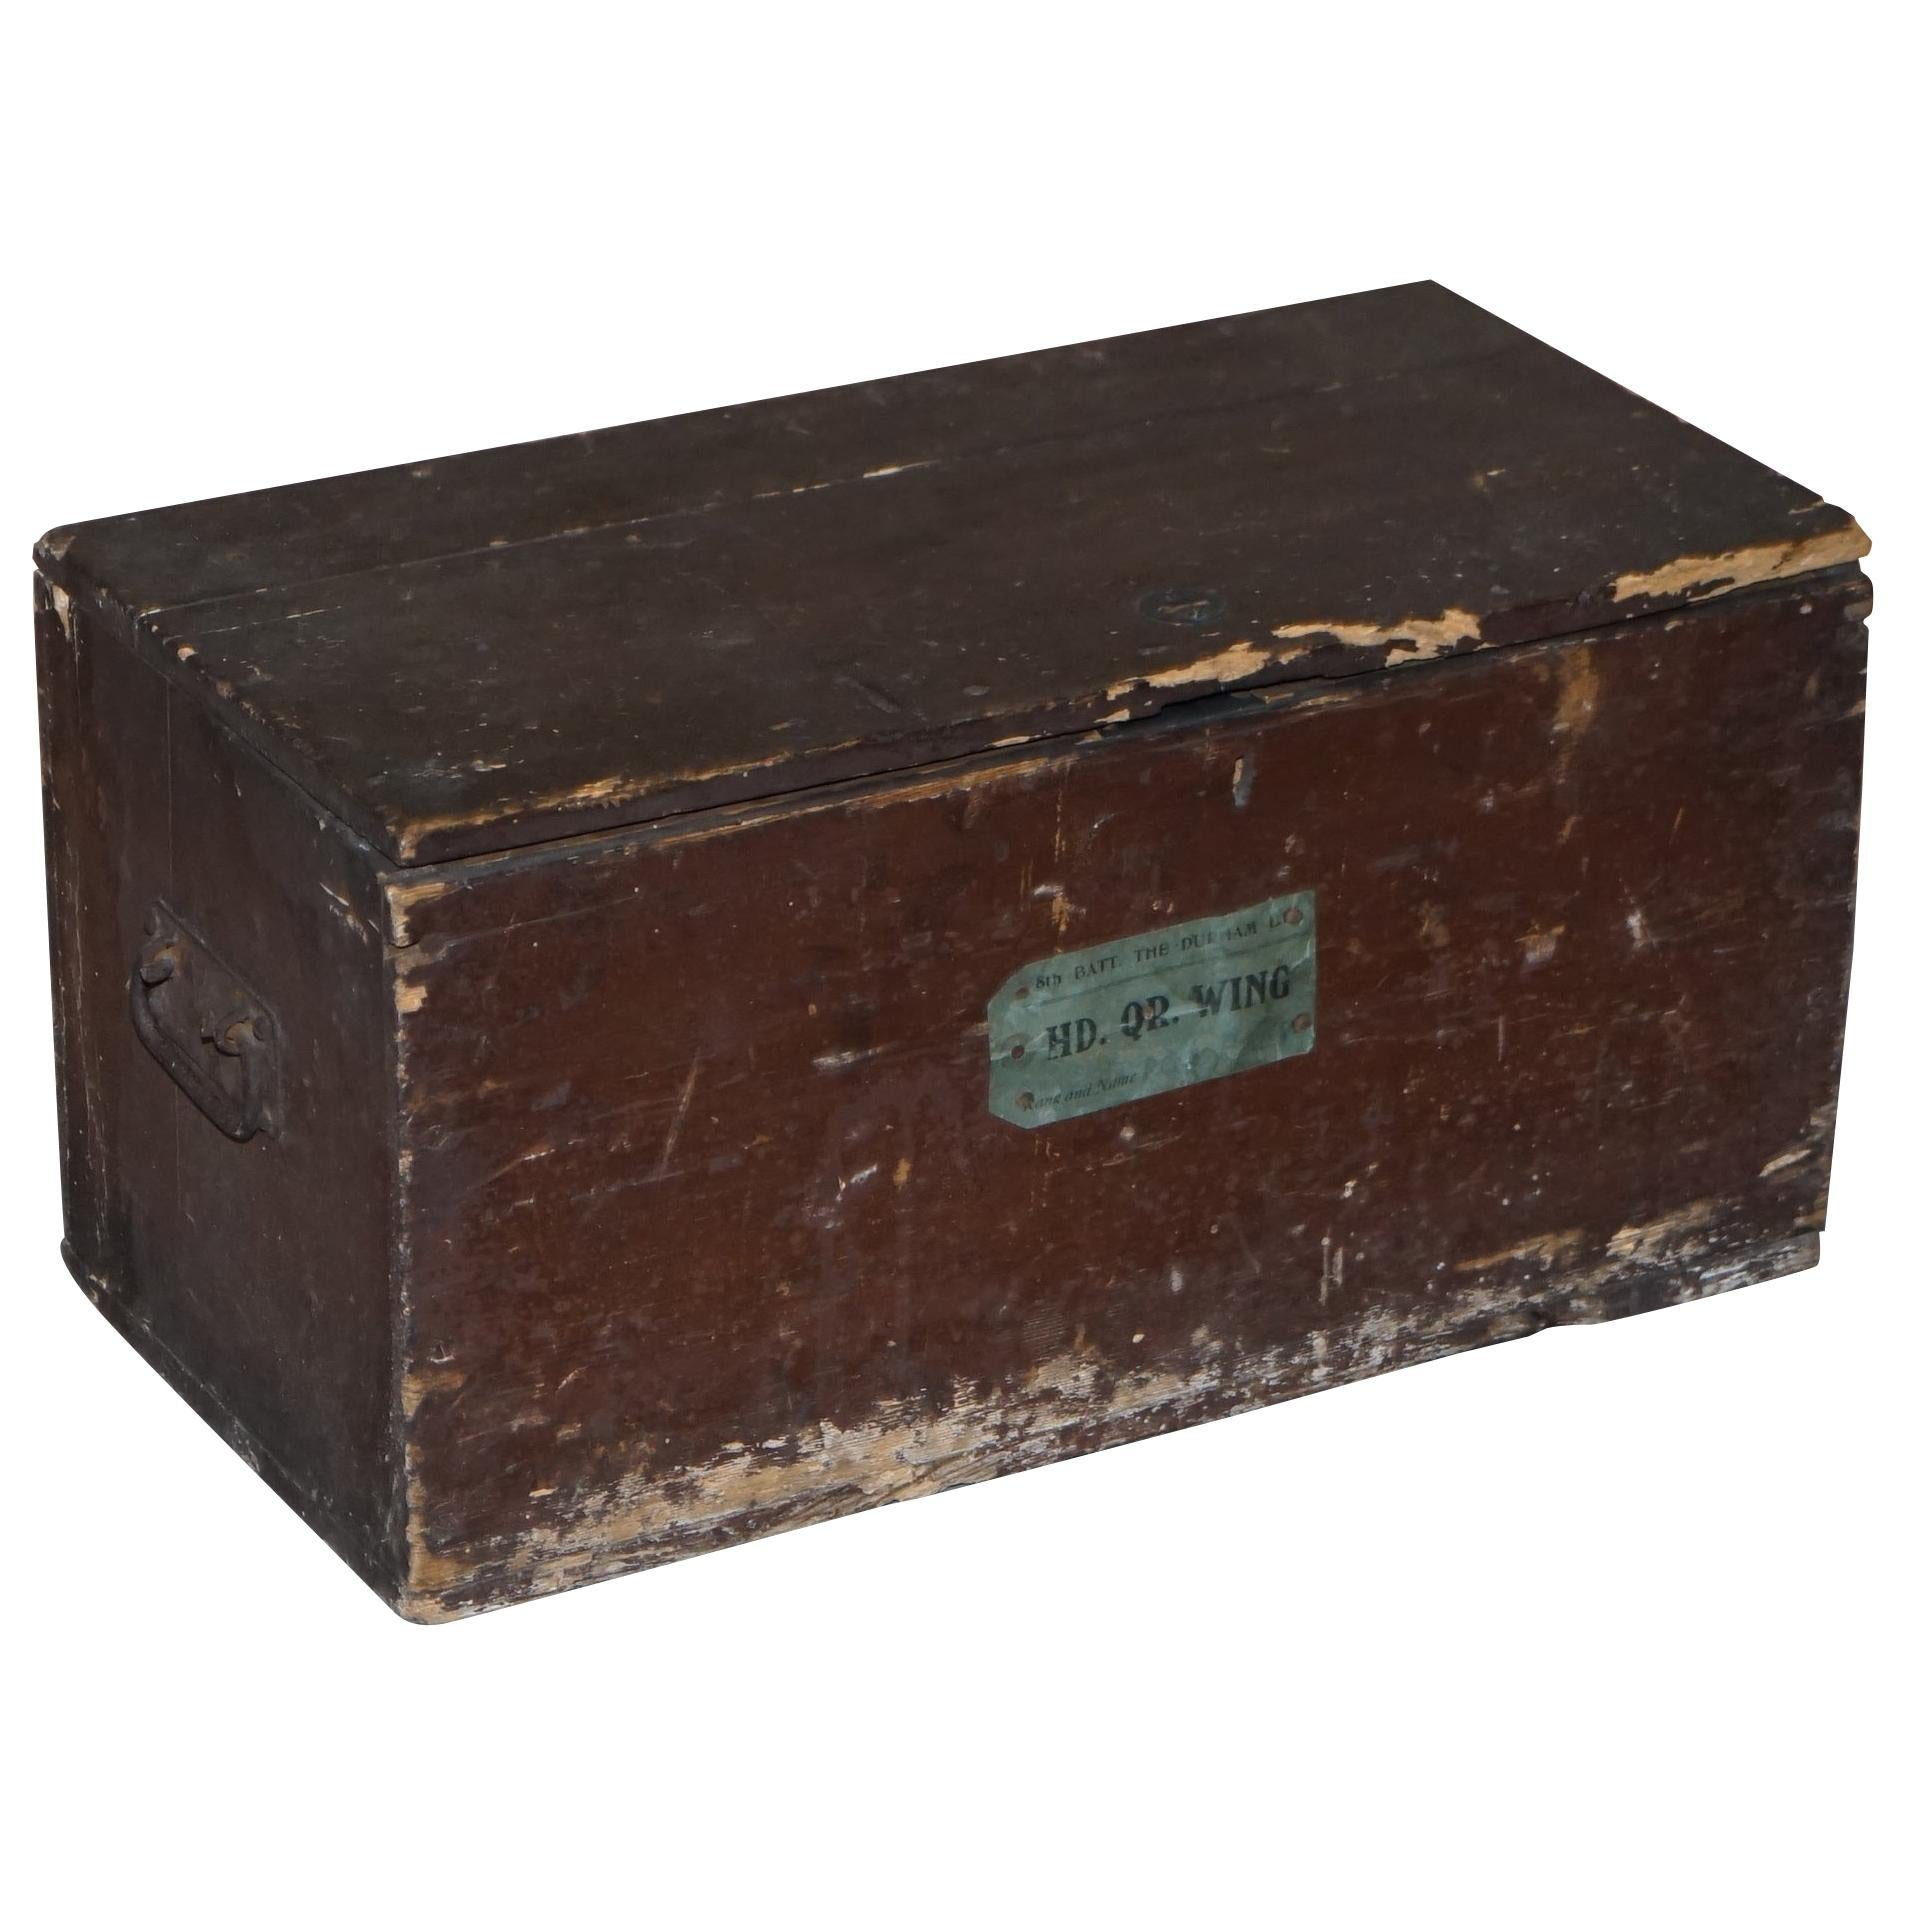 WW2 1939-1945 8th Battalion the Durham Hd Hq Wing Military Campaign Chest Trunk